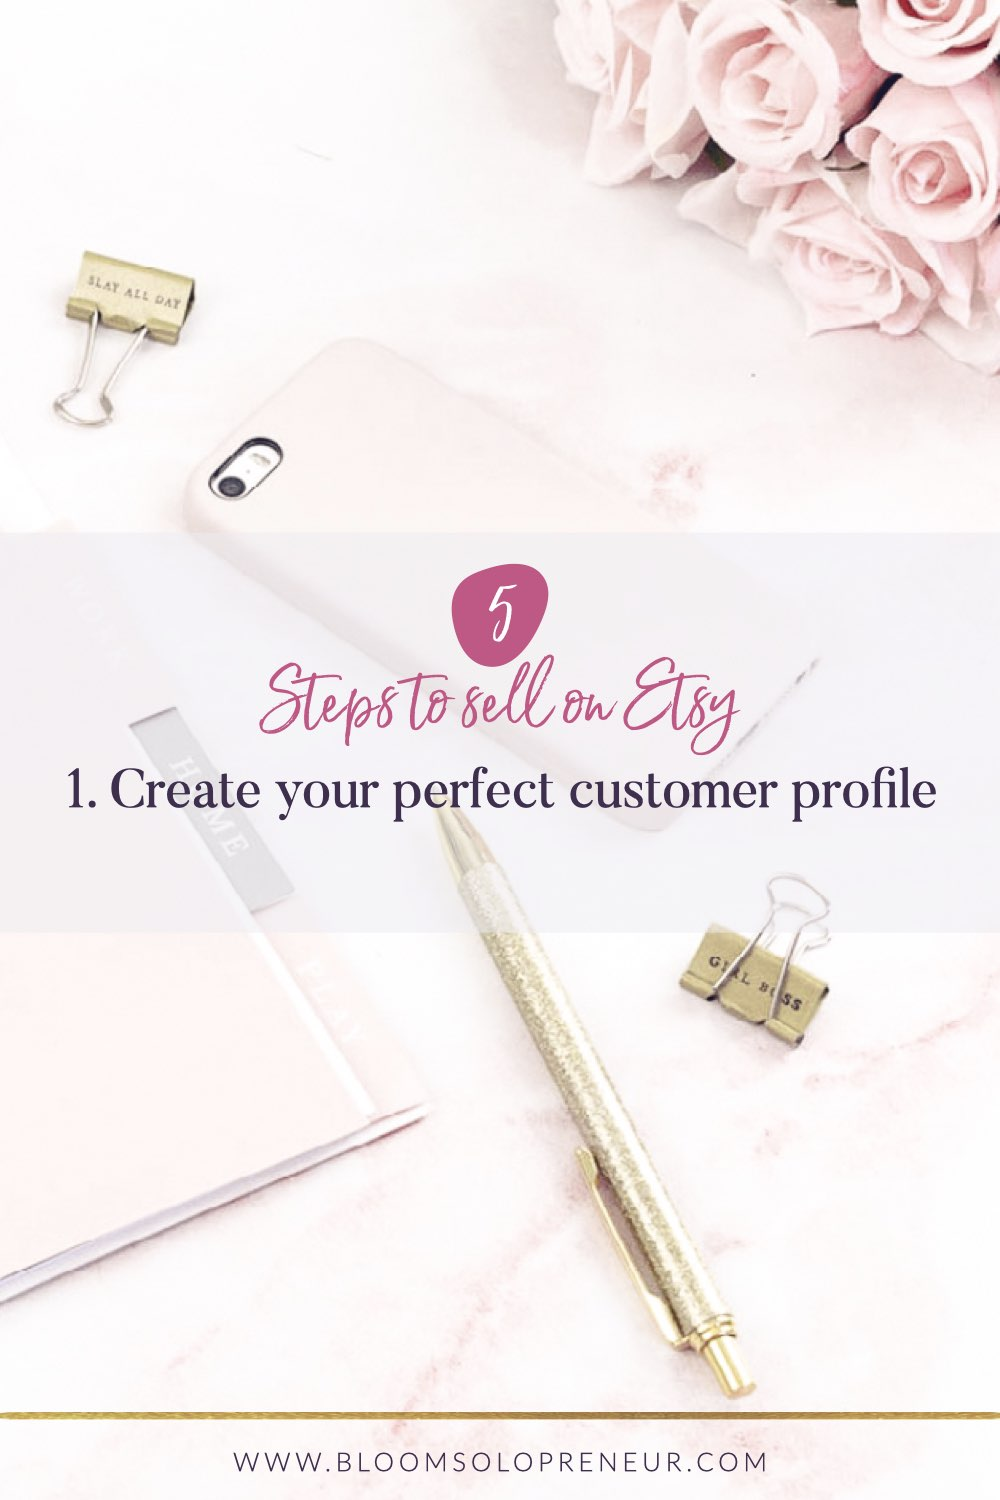 If you want to improve your sales on Etsy follow these 5 steps to create products that sell on Etsy! Step 1 - create a Perfect Customer profiles. Learn how to identify your business niche so you market to them online with confidence and make more money from your craft business. #howtosellonetsy #howtosellonetsy #customerprofiletemplate #handmadebusiness #creativebusiness #bloomsolopreneur